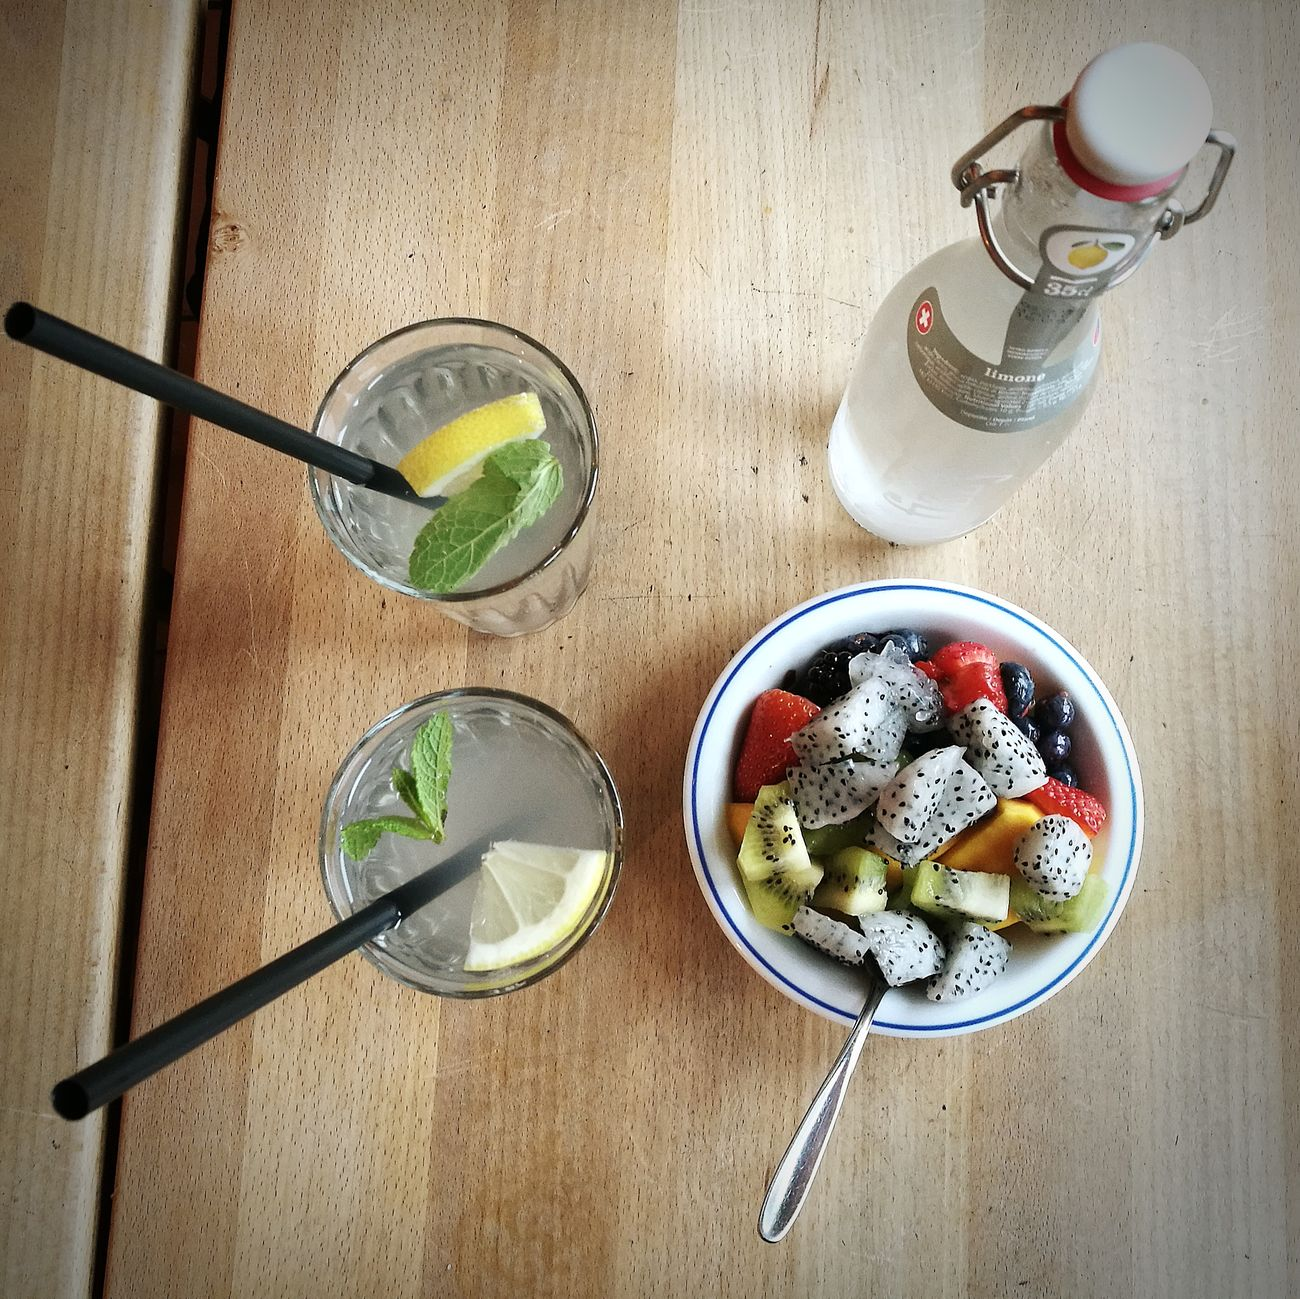 Drink Food And Drink Drinking Glass Bowl Fruit Freshness Healthy Eating Food Drinking Straw Refreshment No People Indoors  Serving Size High Angle View Chia Seed Ready-to-eat